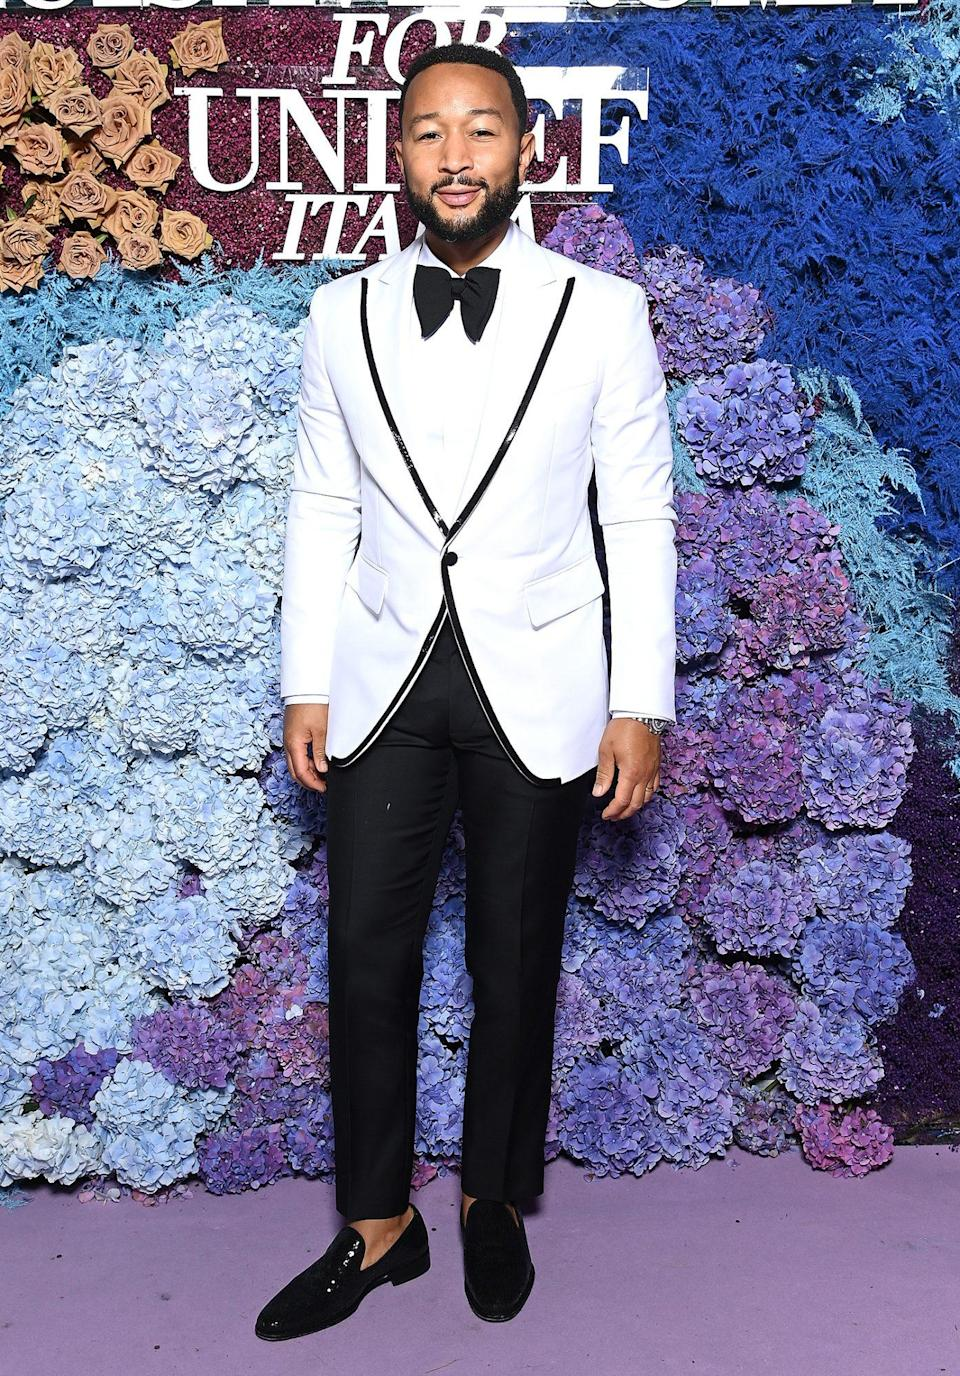 """<p>looks dapper in a white jacket with black piping, bow tie and loafers before <a href=""""https://people.com/music/katy-perry-john-legend-moon-river-duet-unicef-gala-italy/"""" rel=""""nofollow noopener"""" target=""""_blank"""" data-ylk=""""slk:hitting the stage to perform"""" class=""""link rapid-noclick-resp"""">hitting the stage to perform</a>.</p>"""